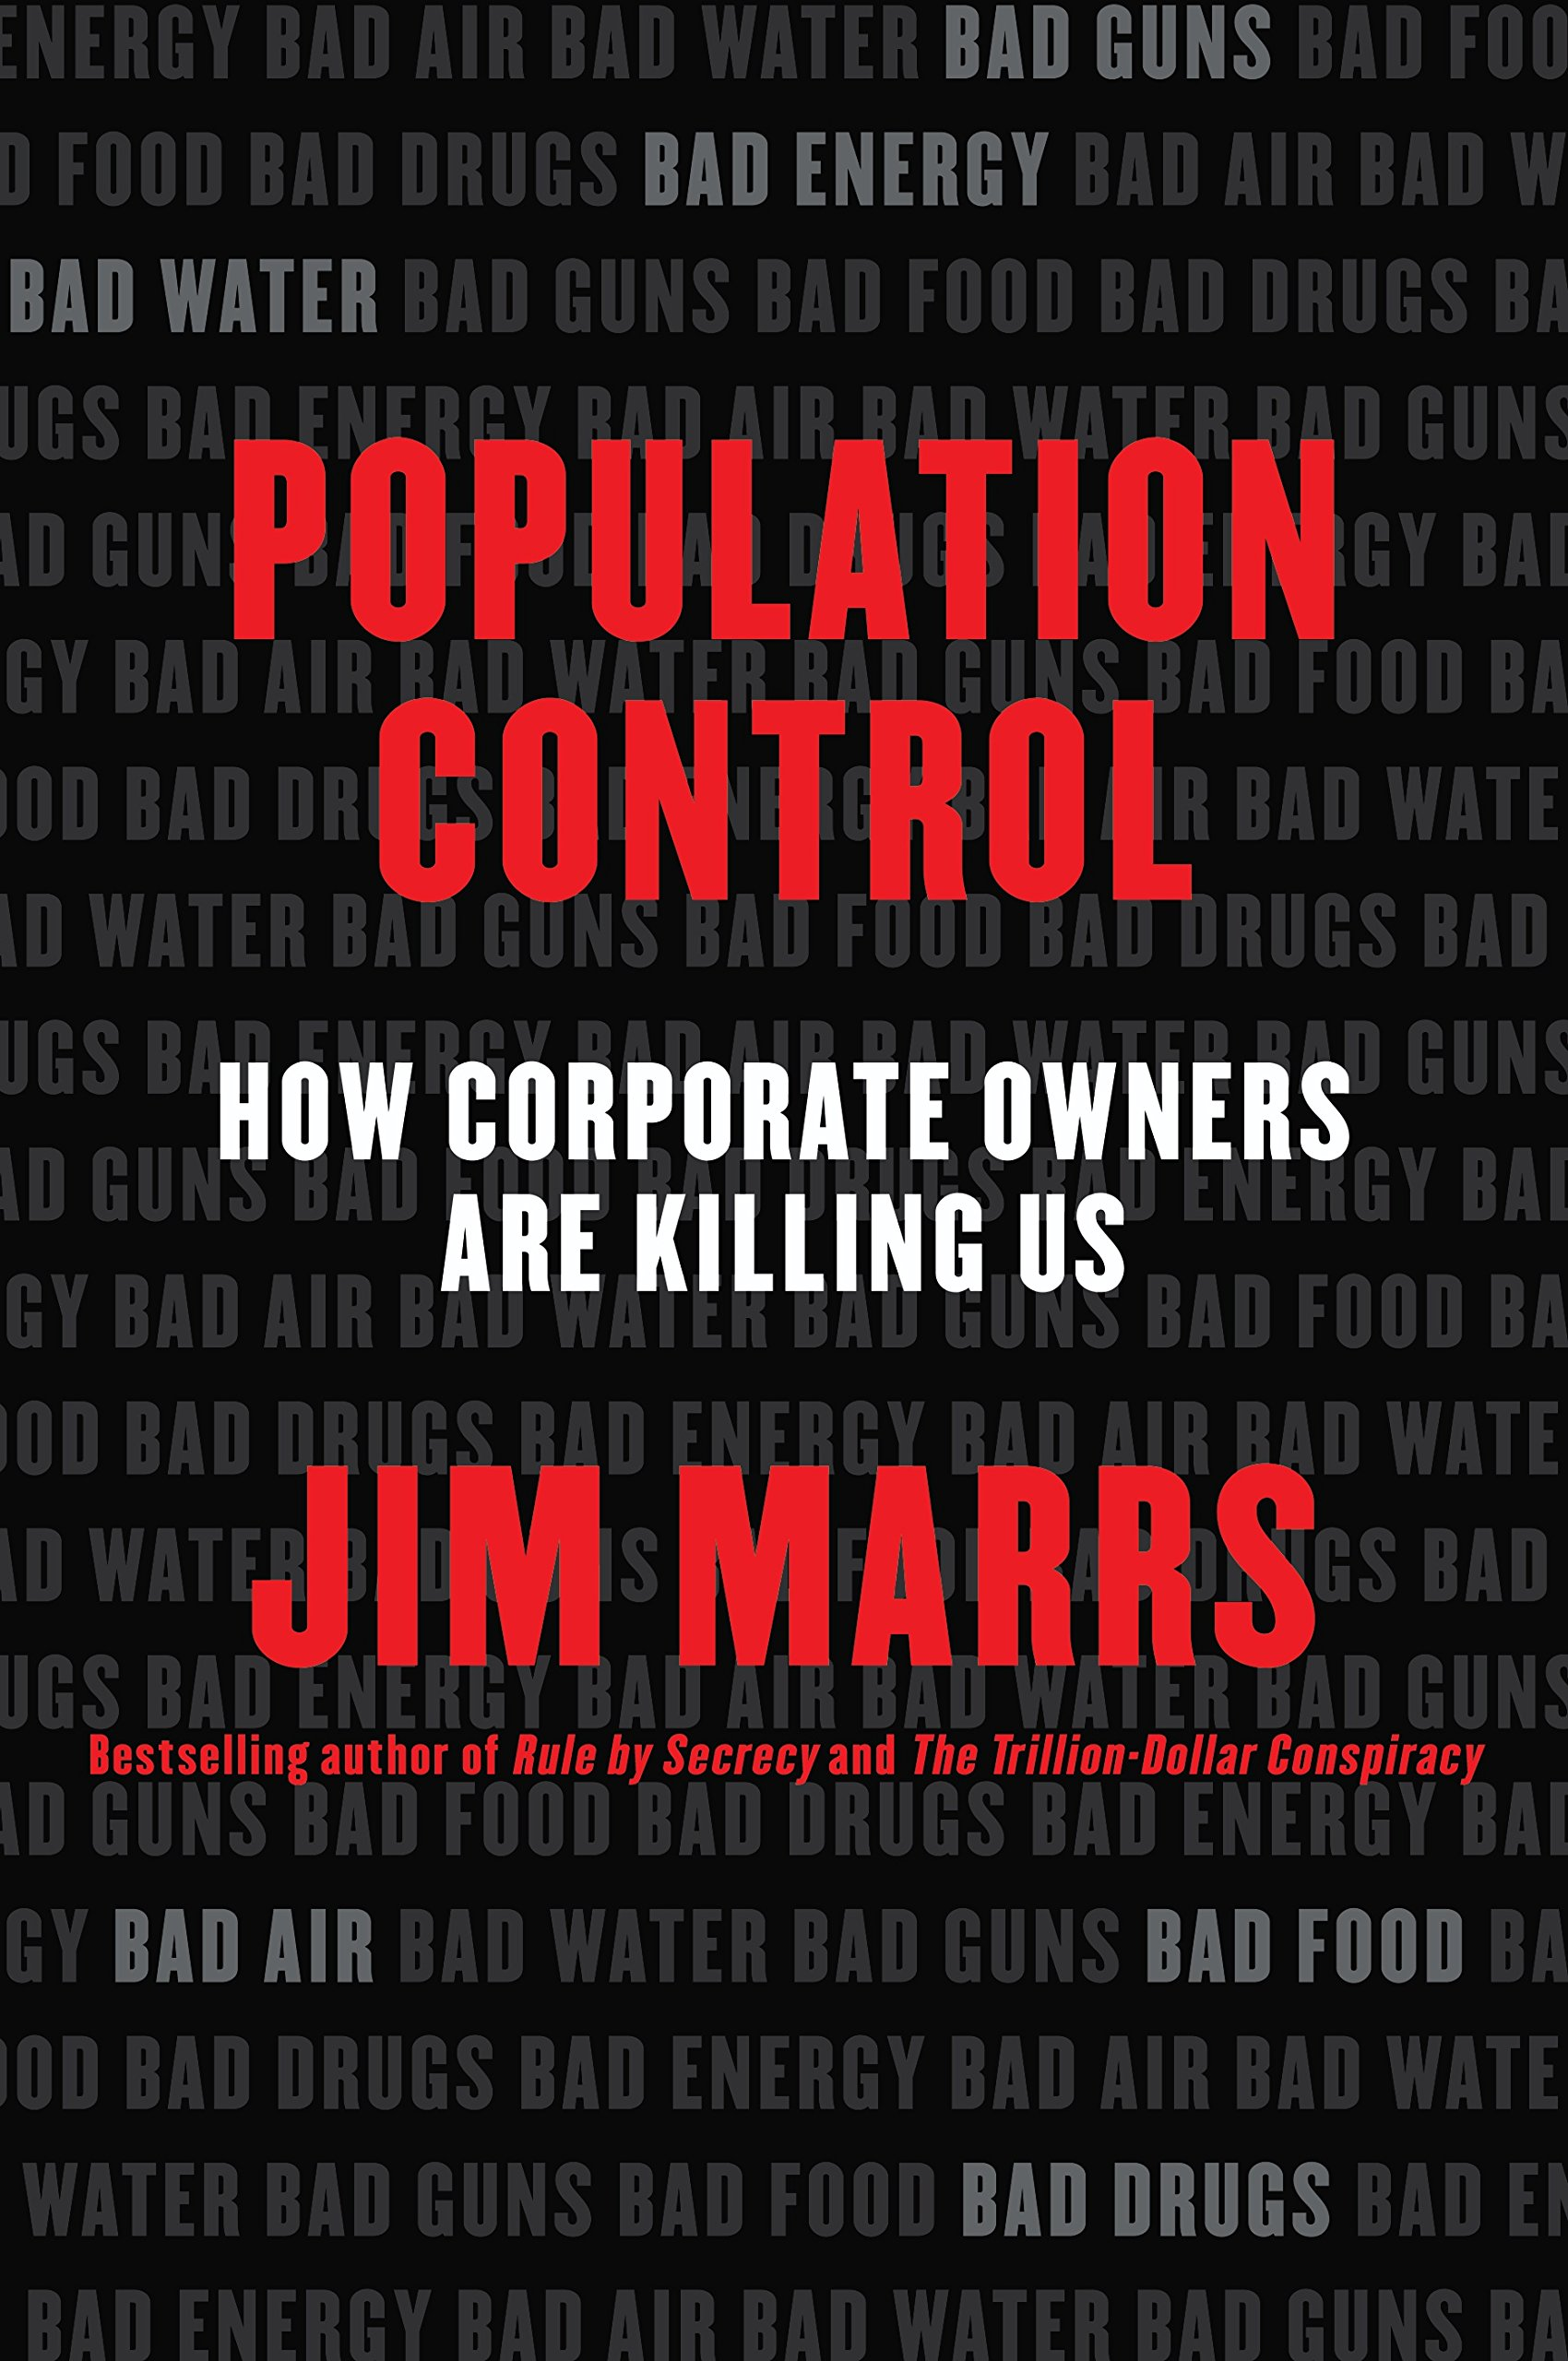 Population Control Corporate Owners Killing product image